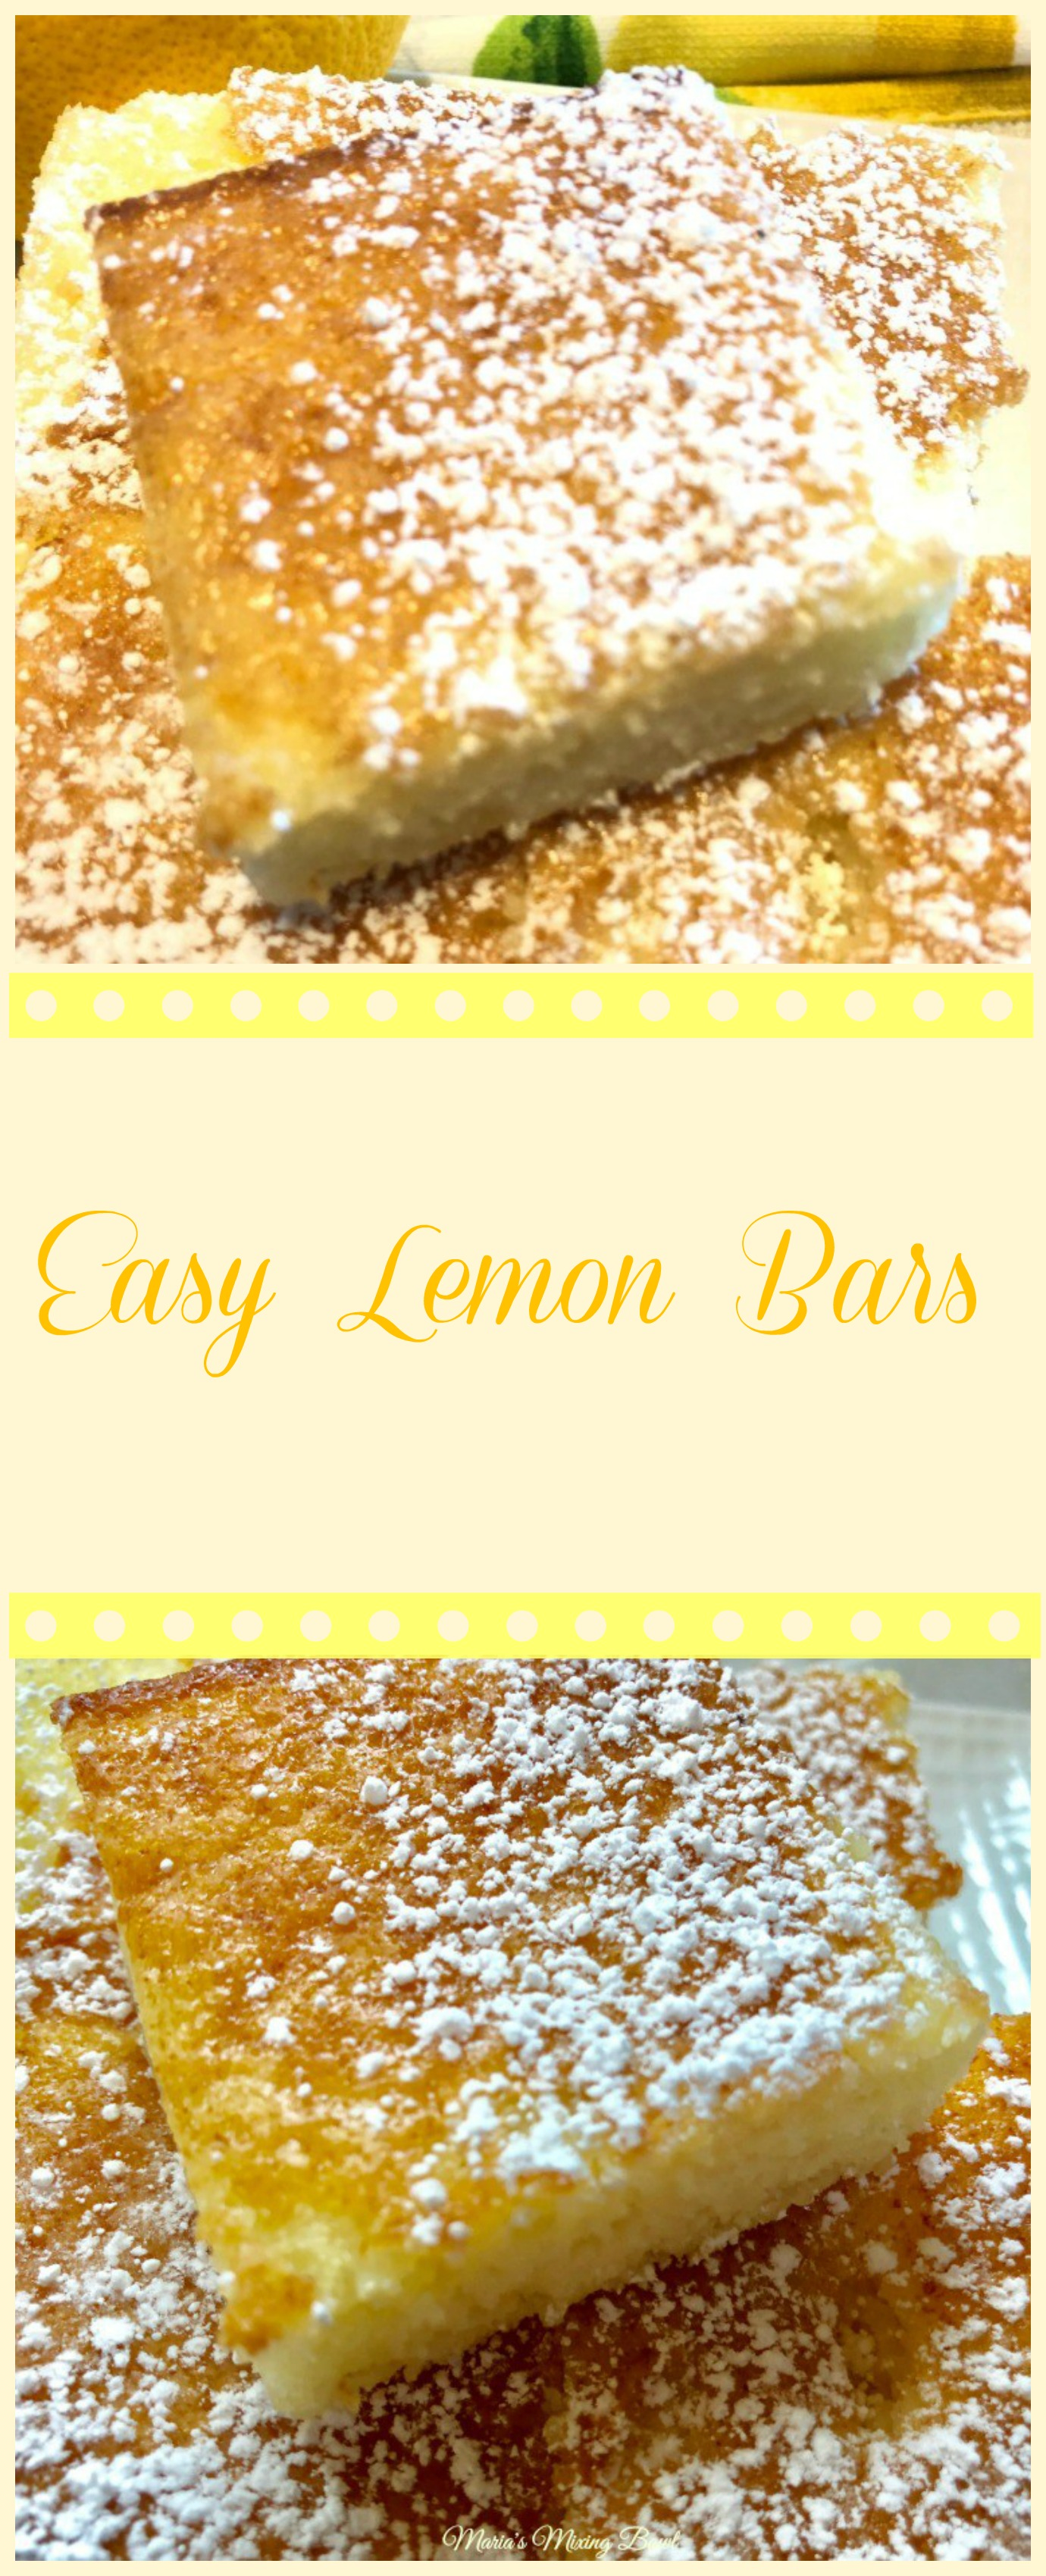 Easy Lemon Bars Recipe is lip smacking good! Best part it only takes 2 ingredients to make! Oh happy day because they go fast so we always make a double batch.